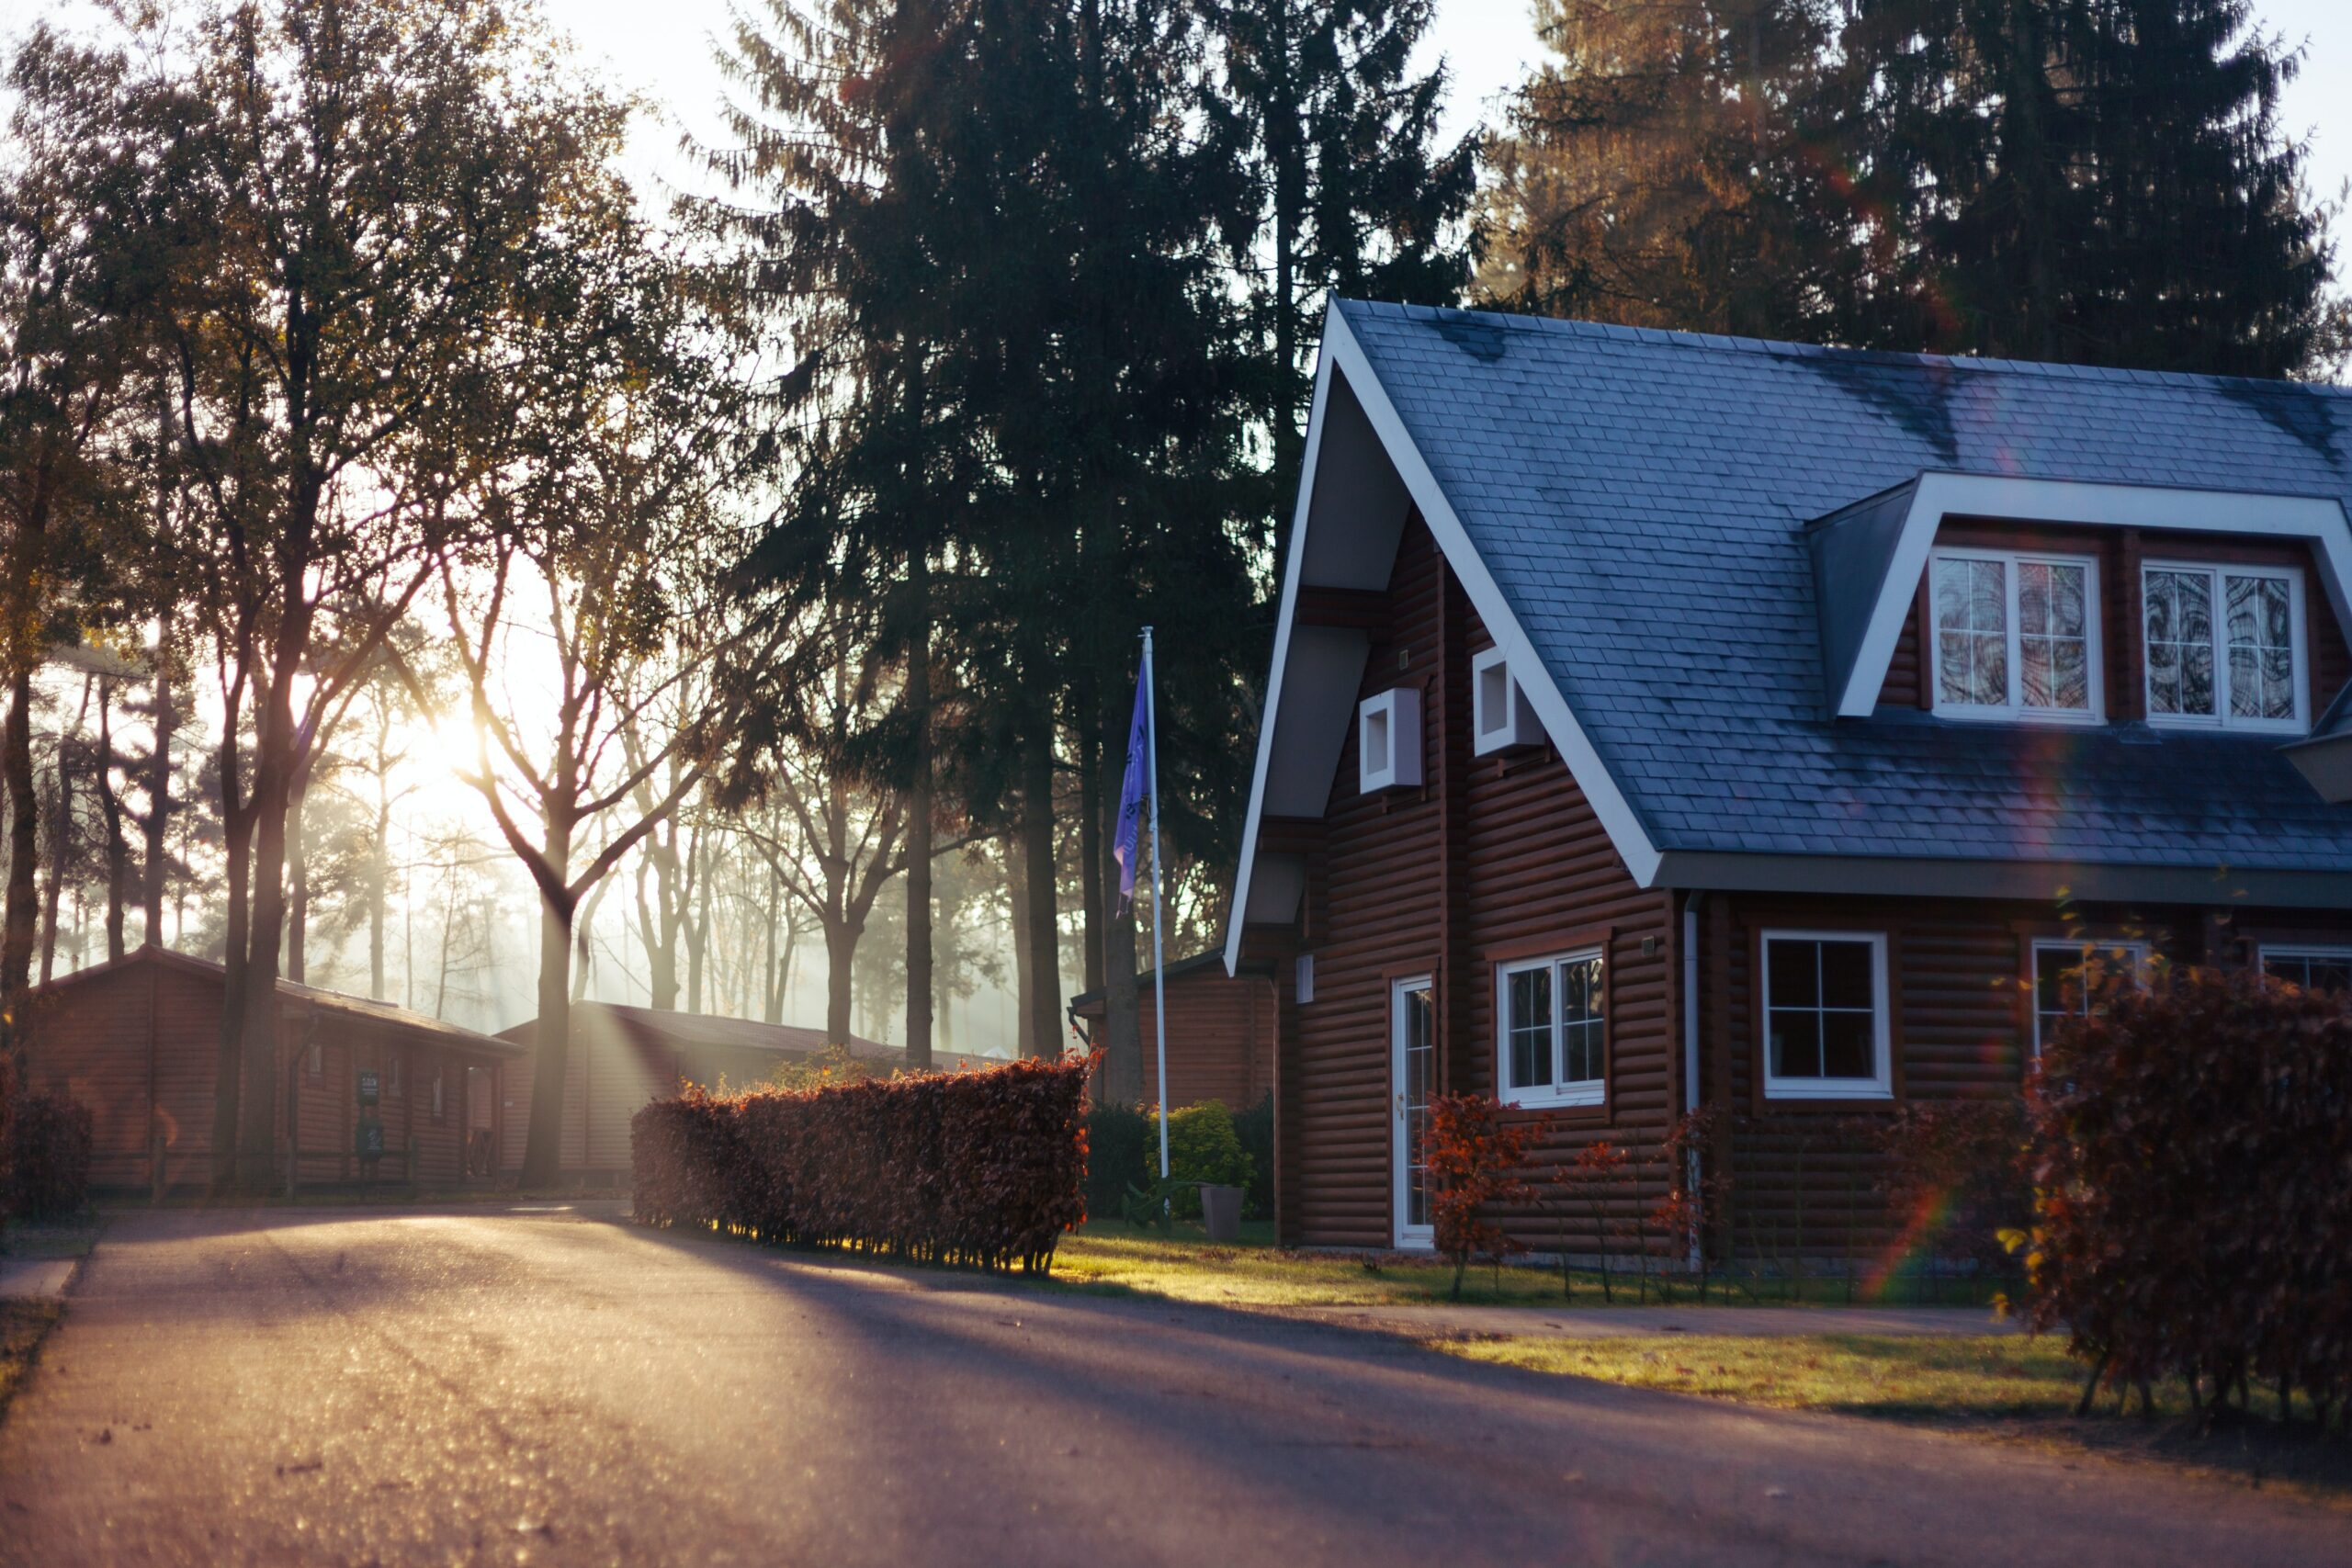 List of 3 residential real estate investors from Northern Europe